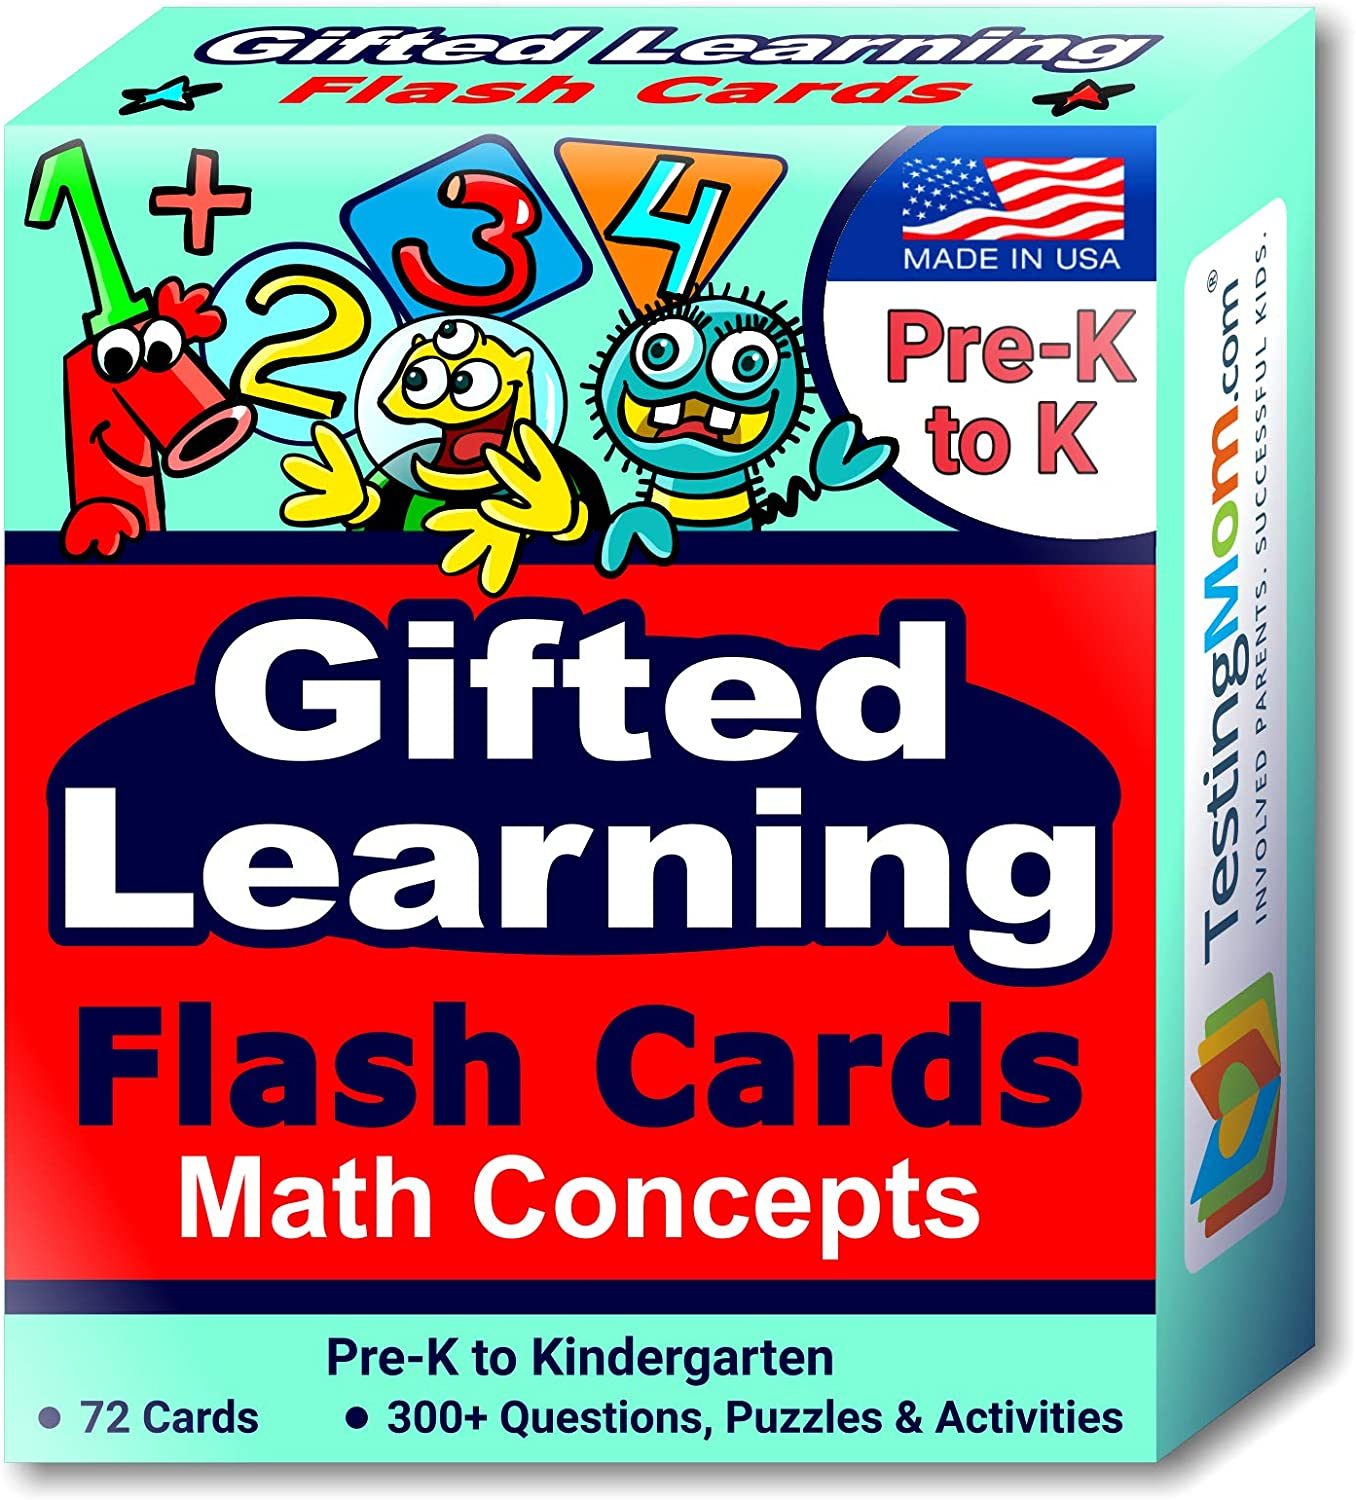 TestingMom.com Gifted Super Direct sale of manufacturer Special SALE held Learning Flash Concepts Cards – Math